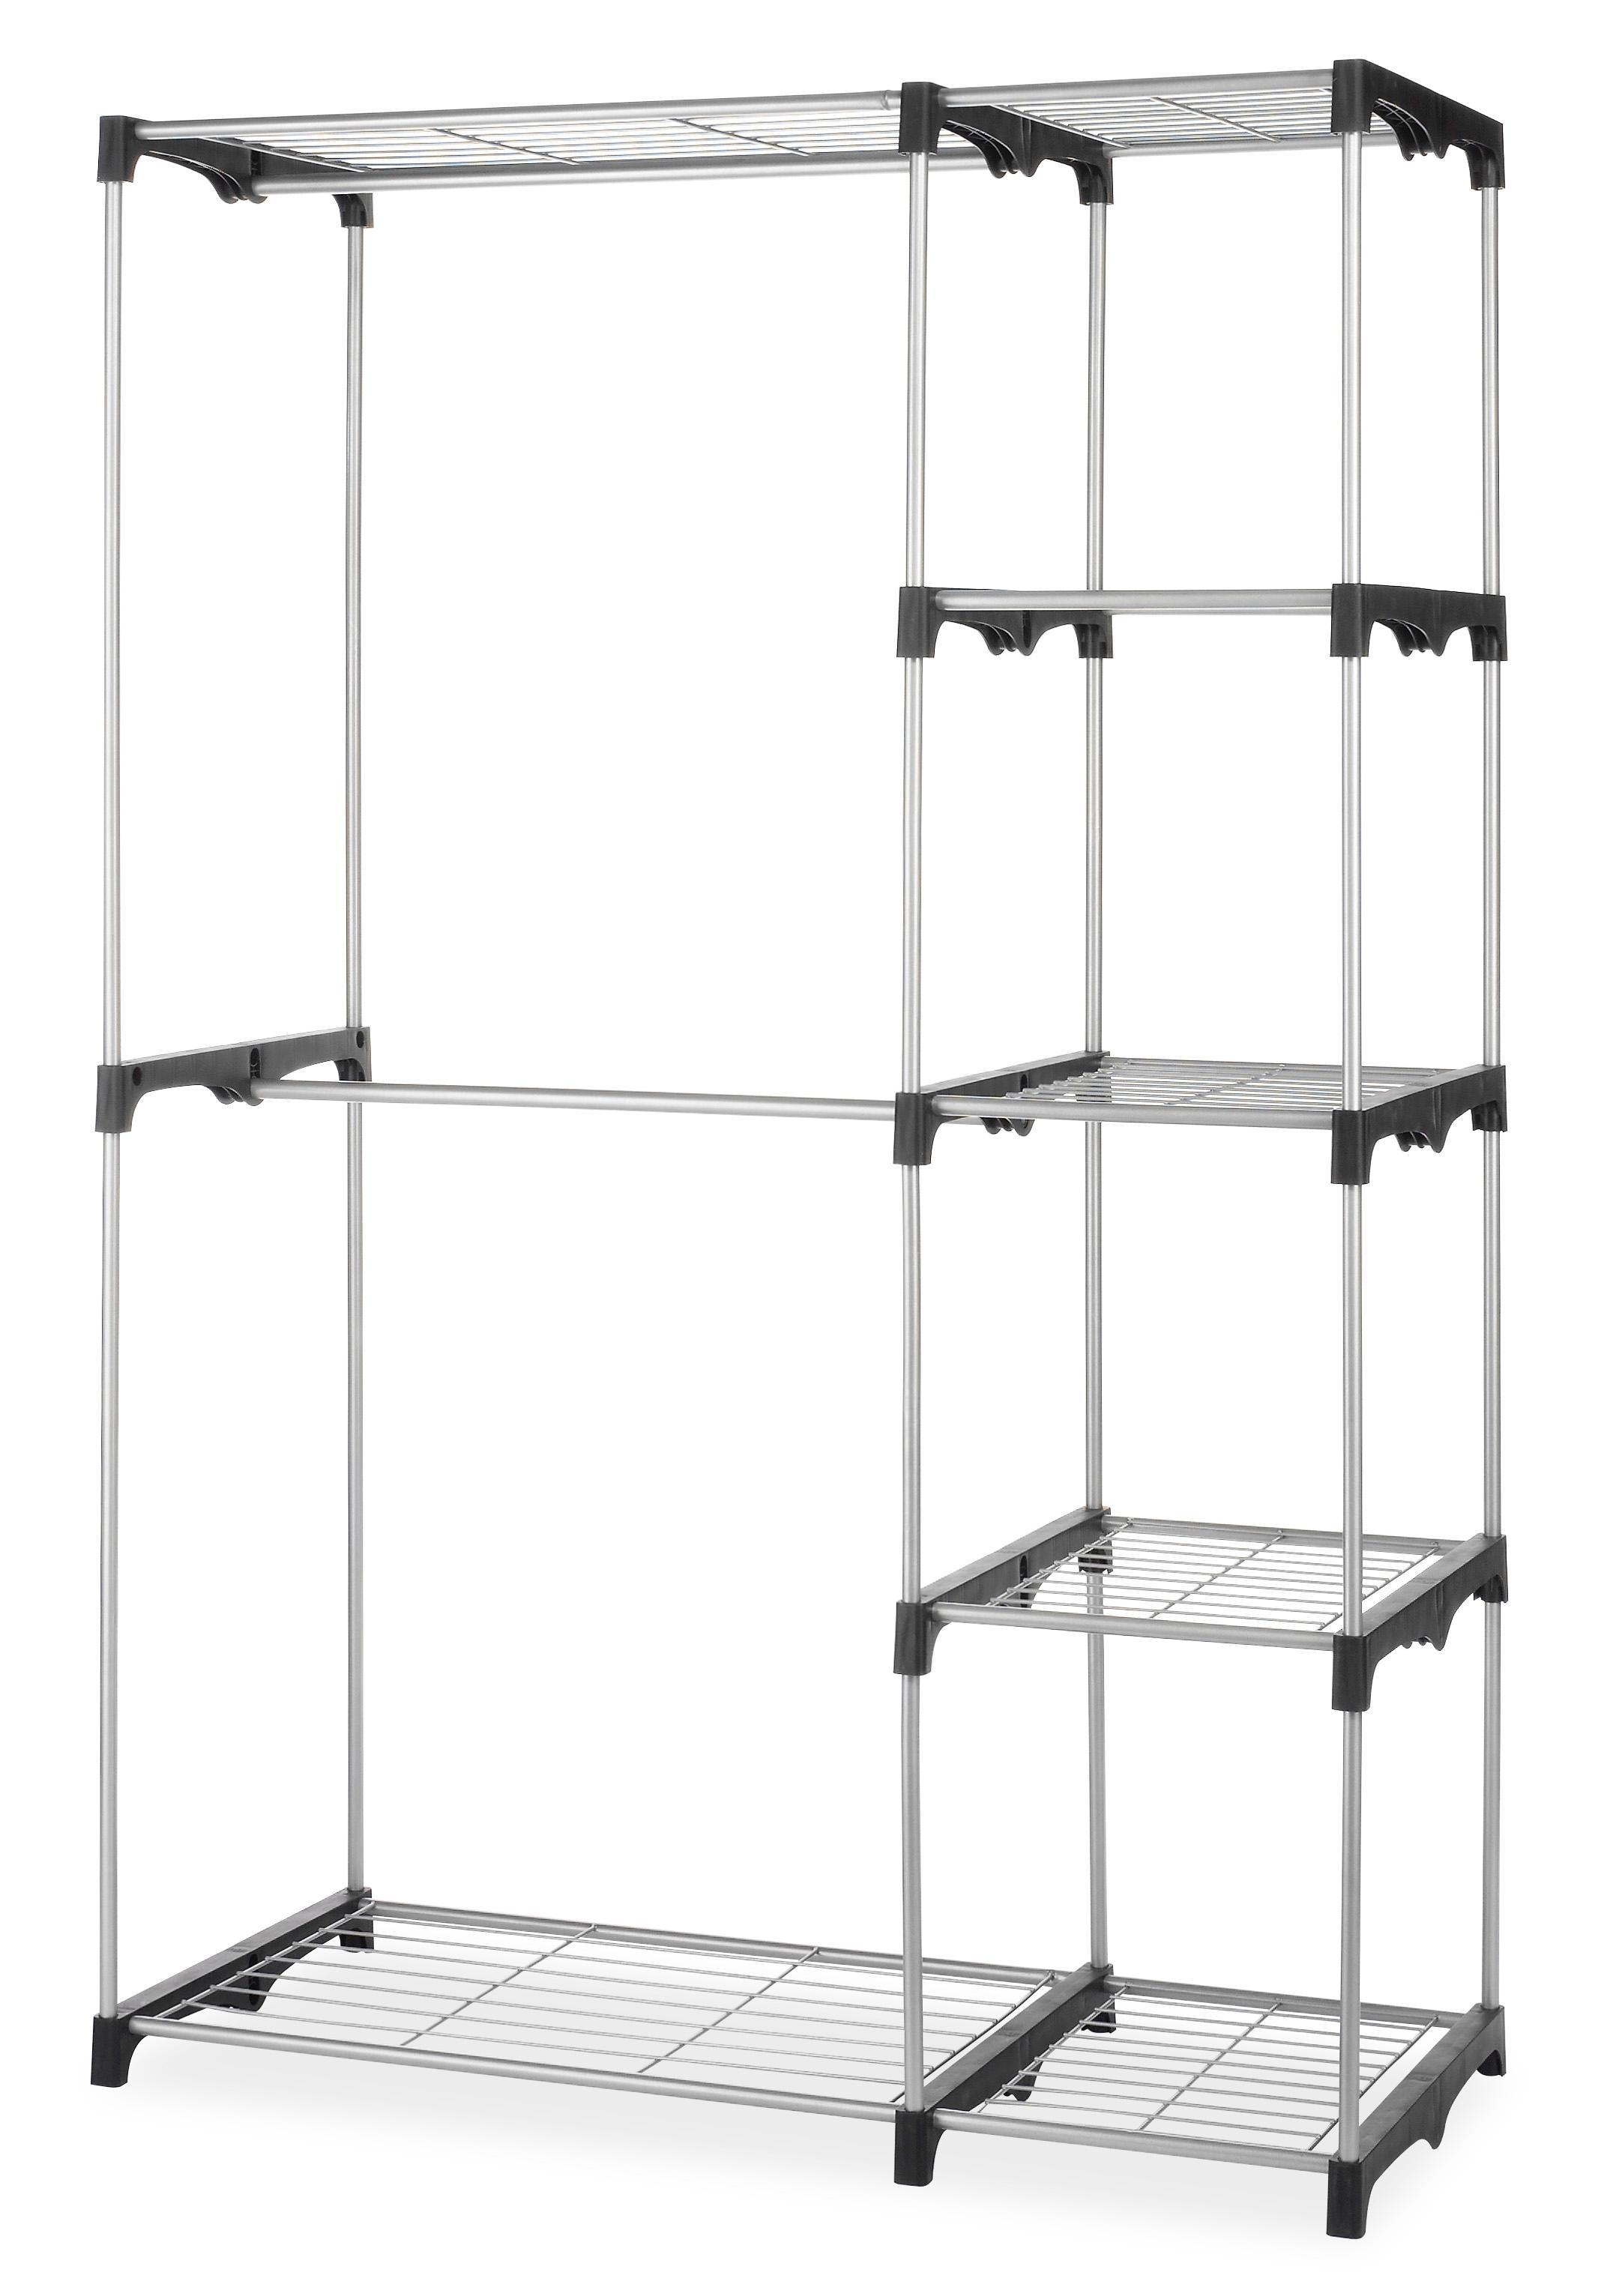 whitmor 6779 3044 double rod closet silver. Black Bedroom Furniture Sets. Home Design Ideas